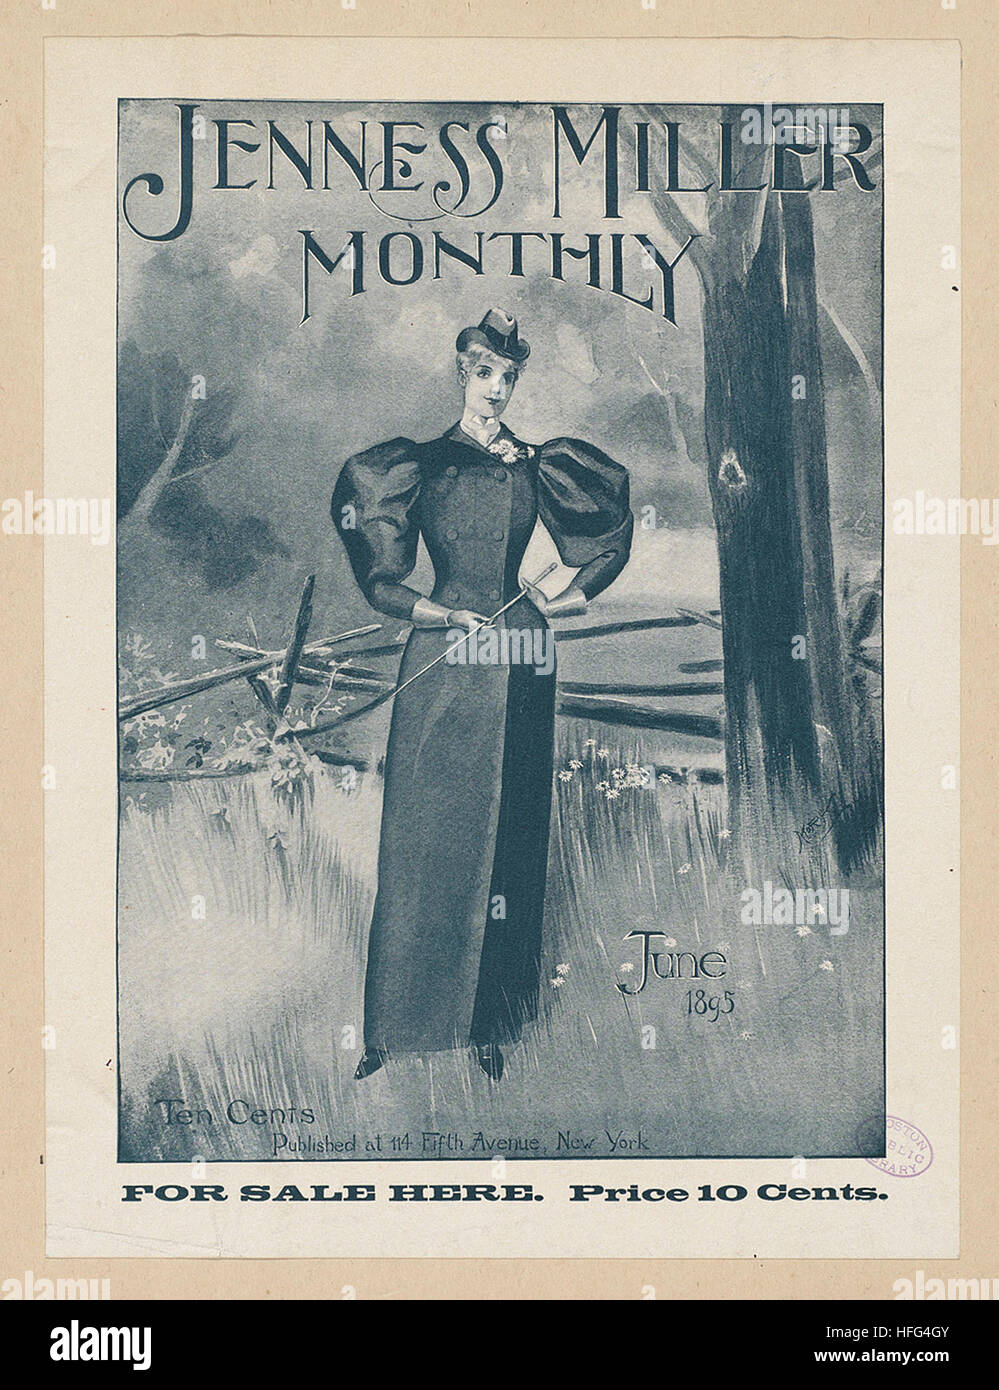 Jenness Miller monthly, June 1895 - Stock Image